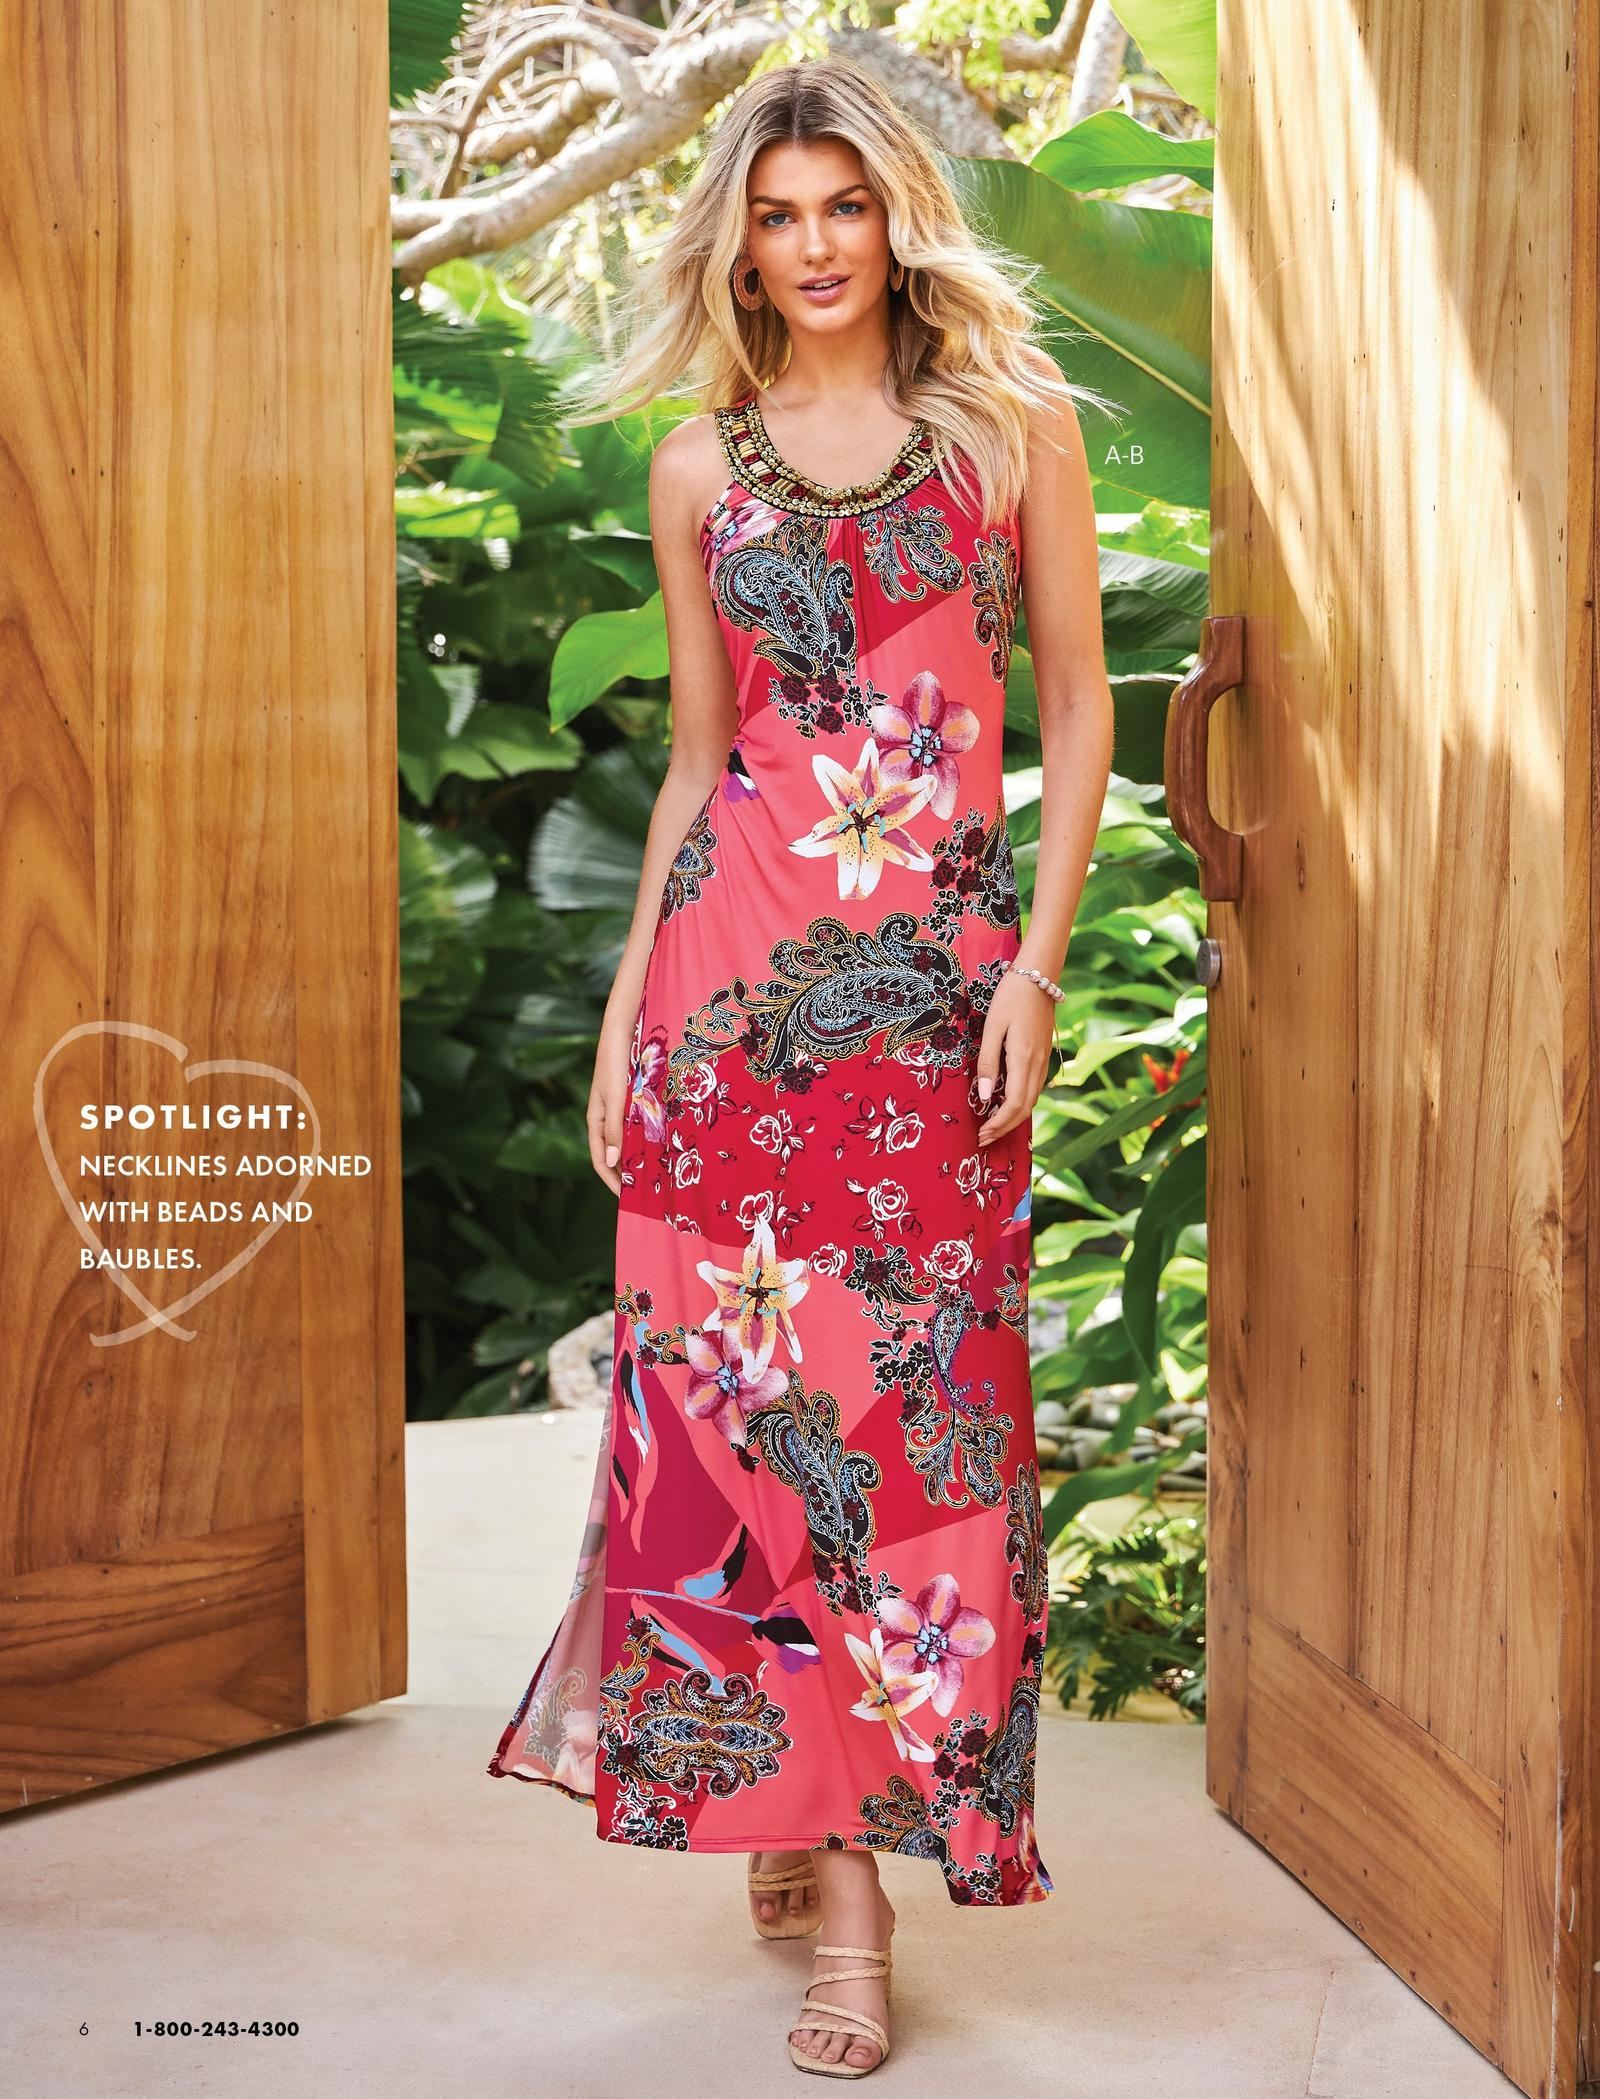 model wearing a pink floral embellished high-neck maxi dress and raffia strappy heels.